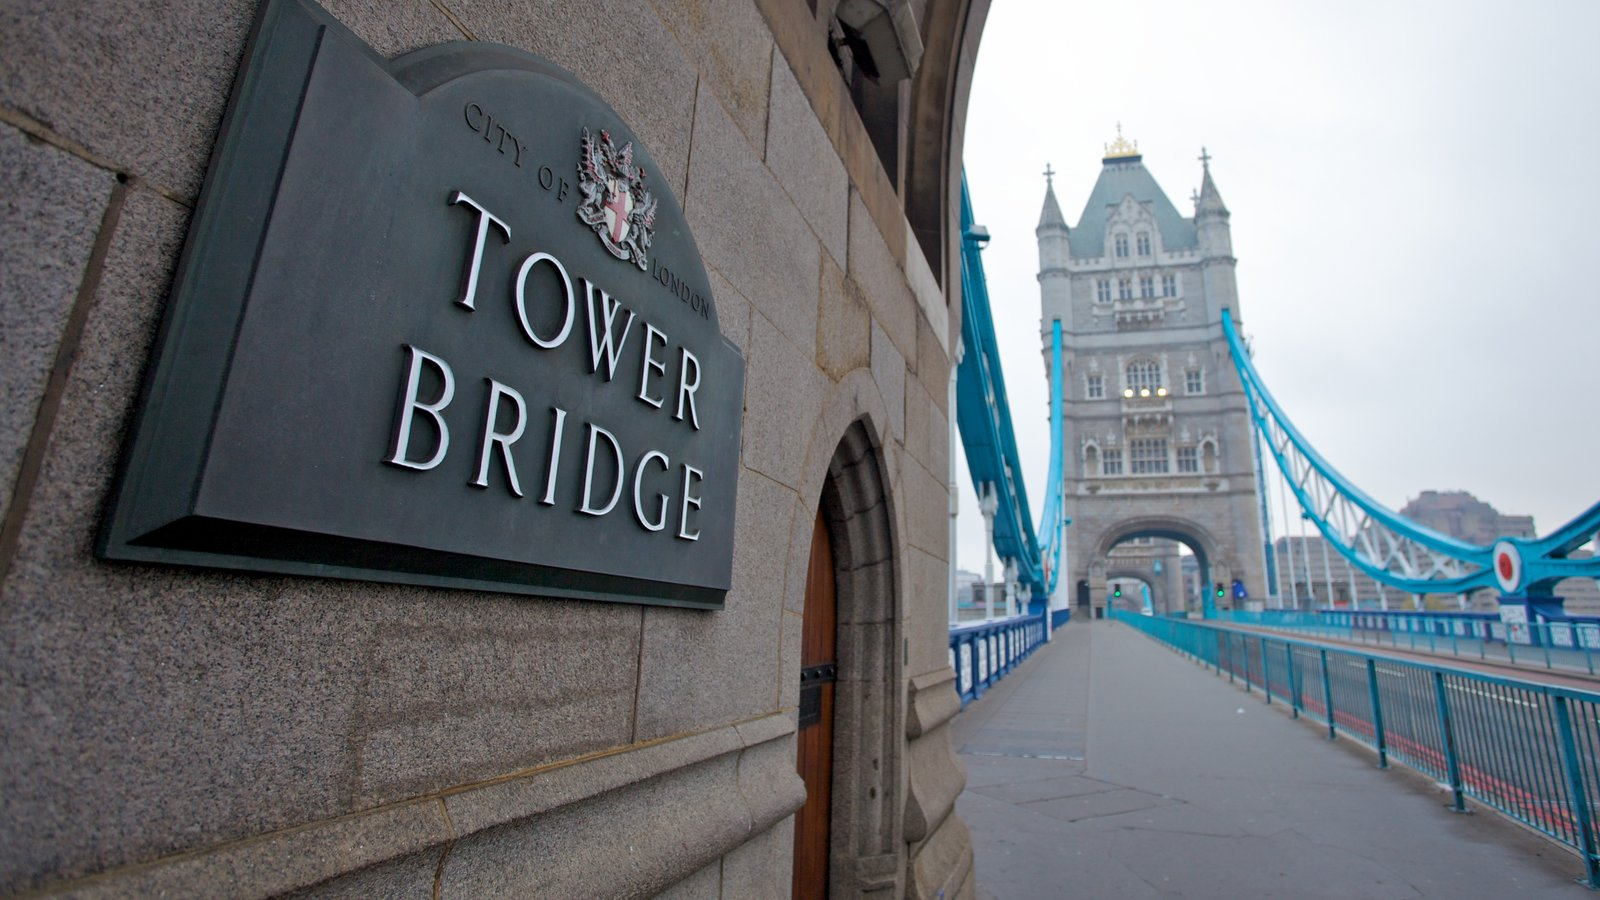 Tower Bridge which includes a monument, street scenes and signage